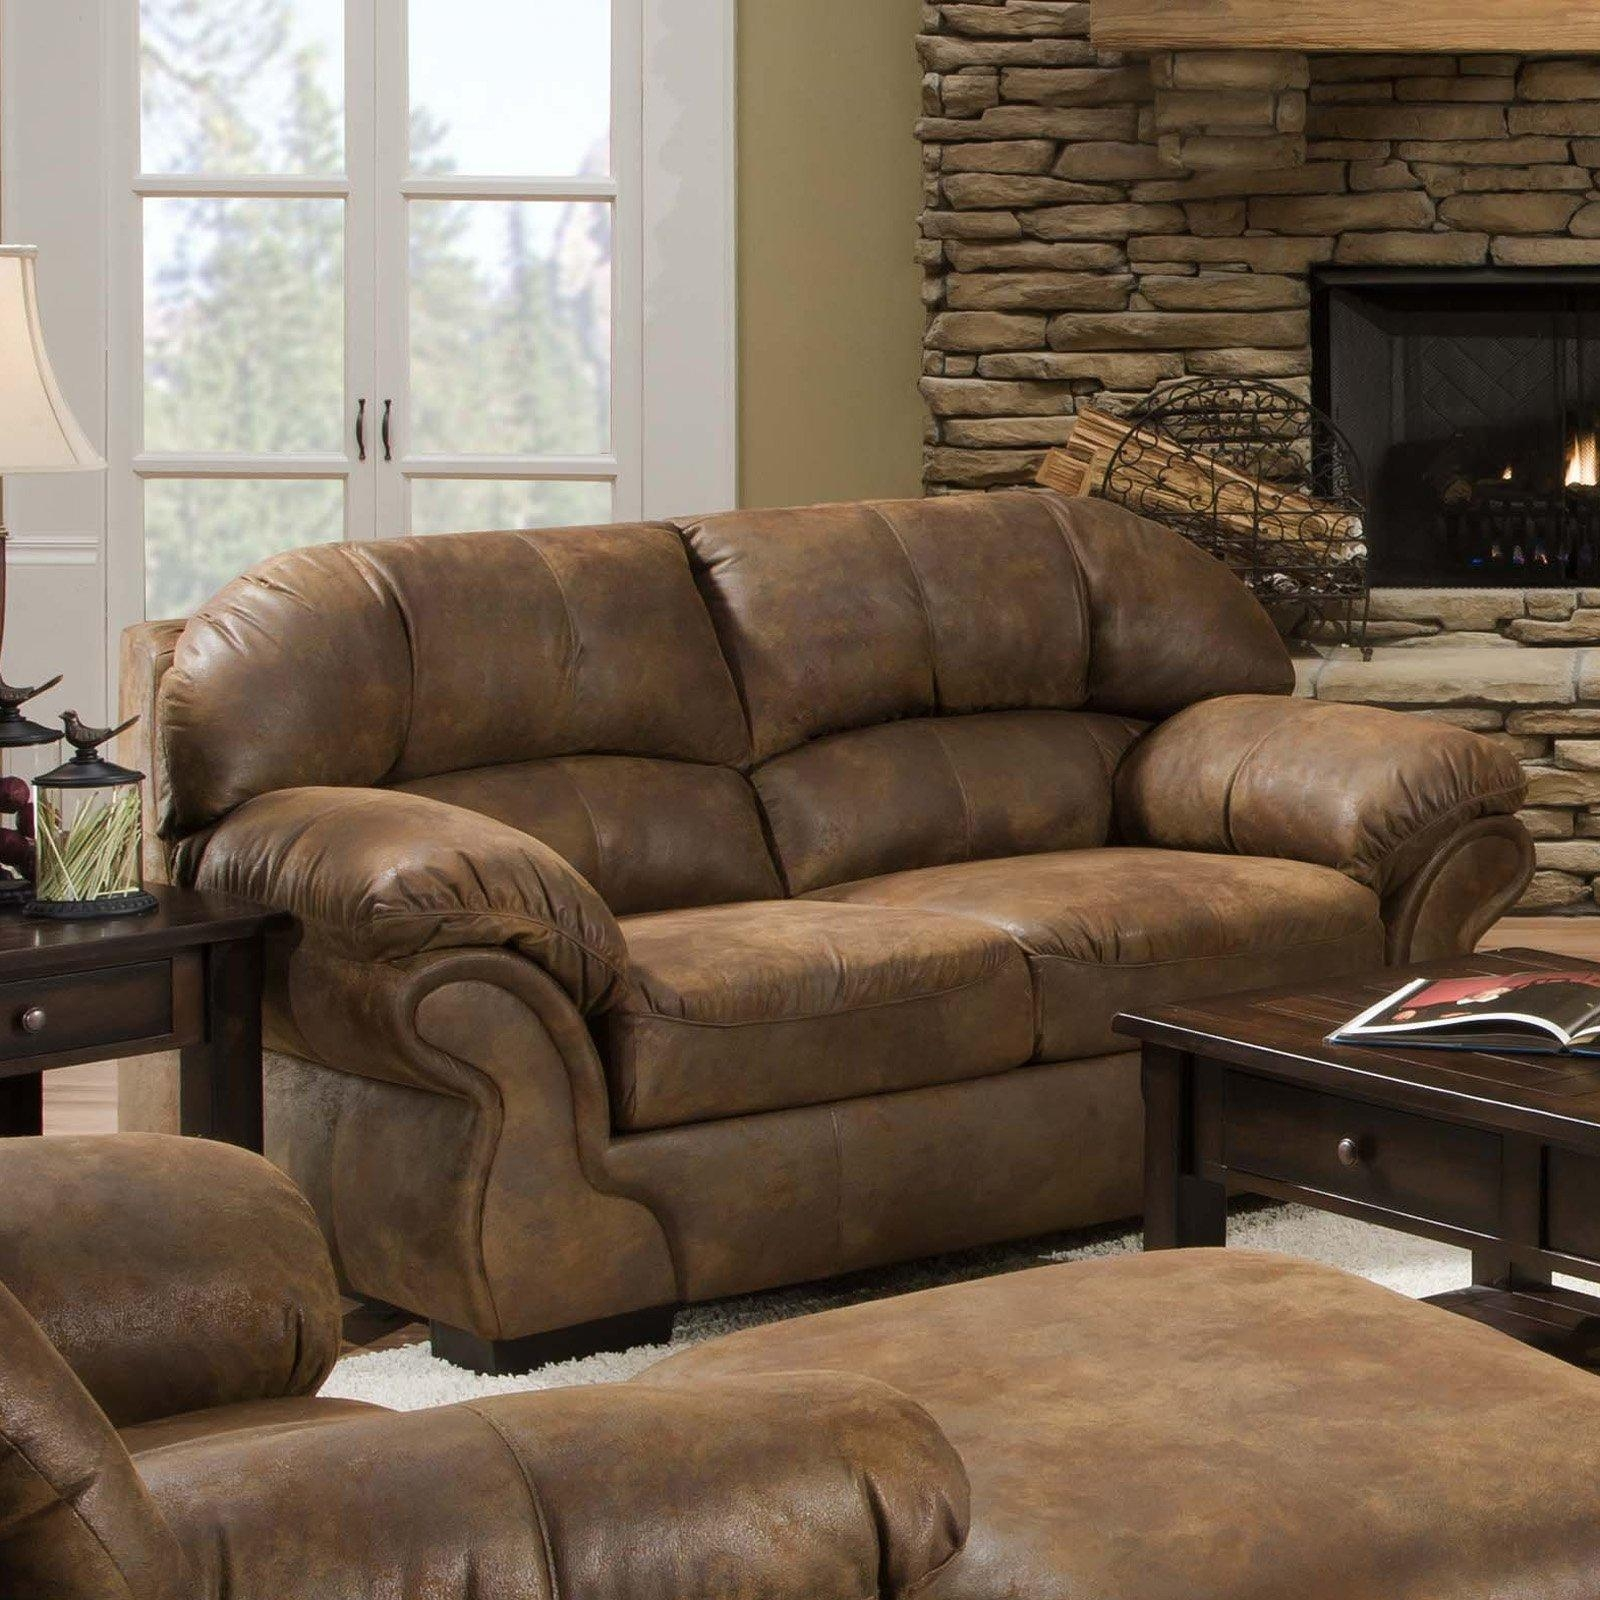 Simmons Pinto Tobacco Leather Loveseat | Hayneedle With Simmons Leather Sofas (Image 10 of 20)